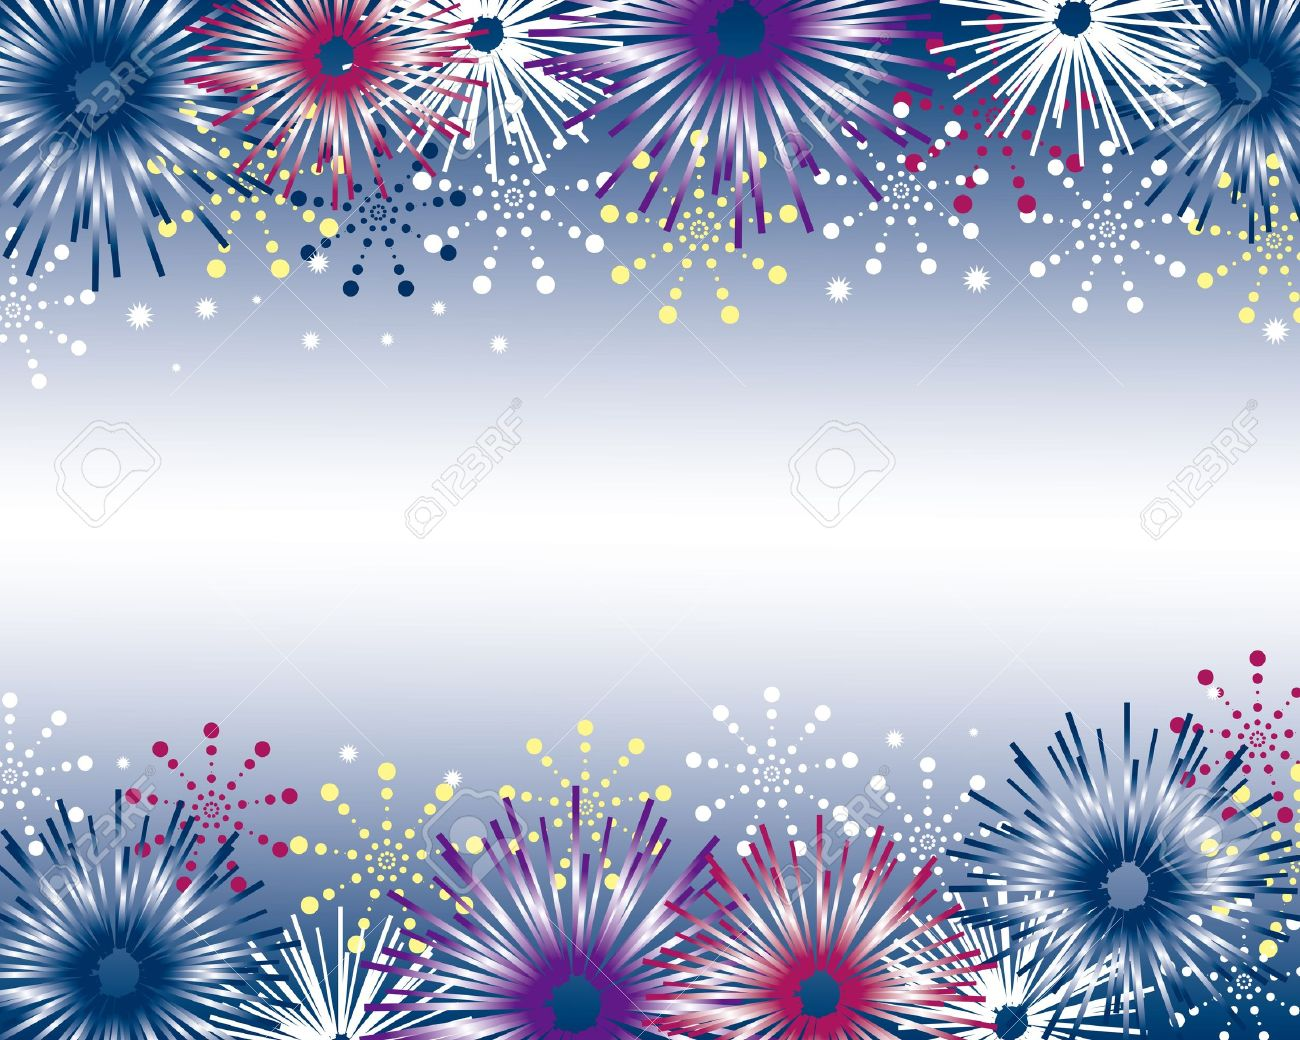 fireworks background royalty free cliparts vectors and stock